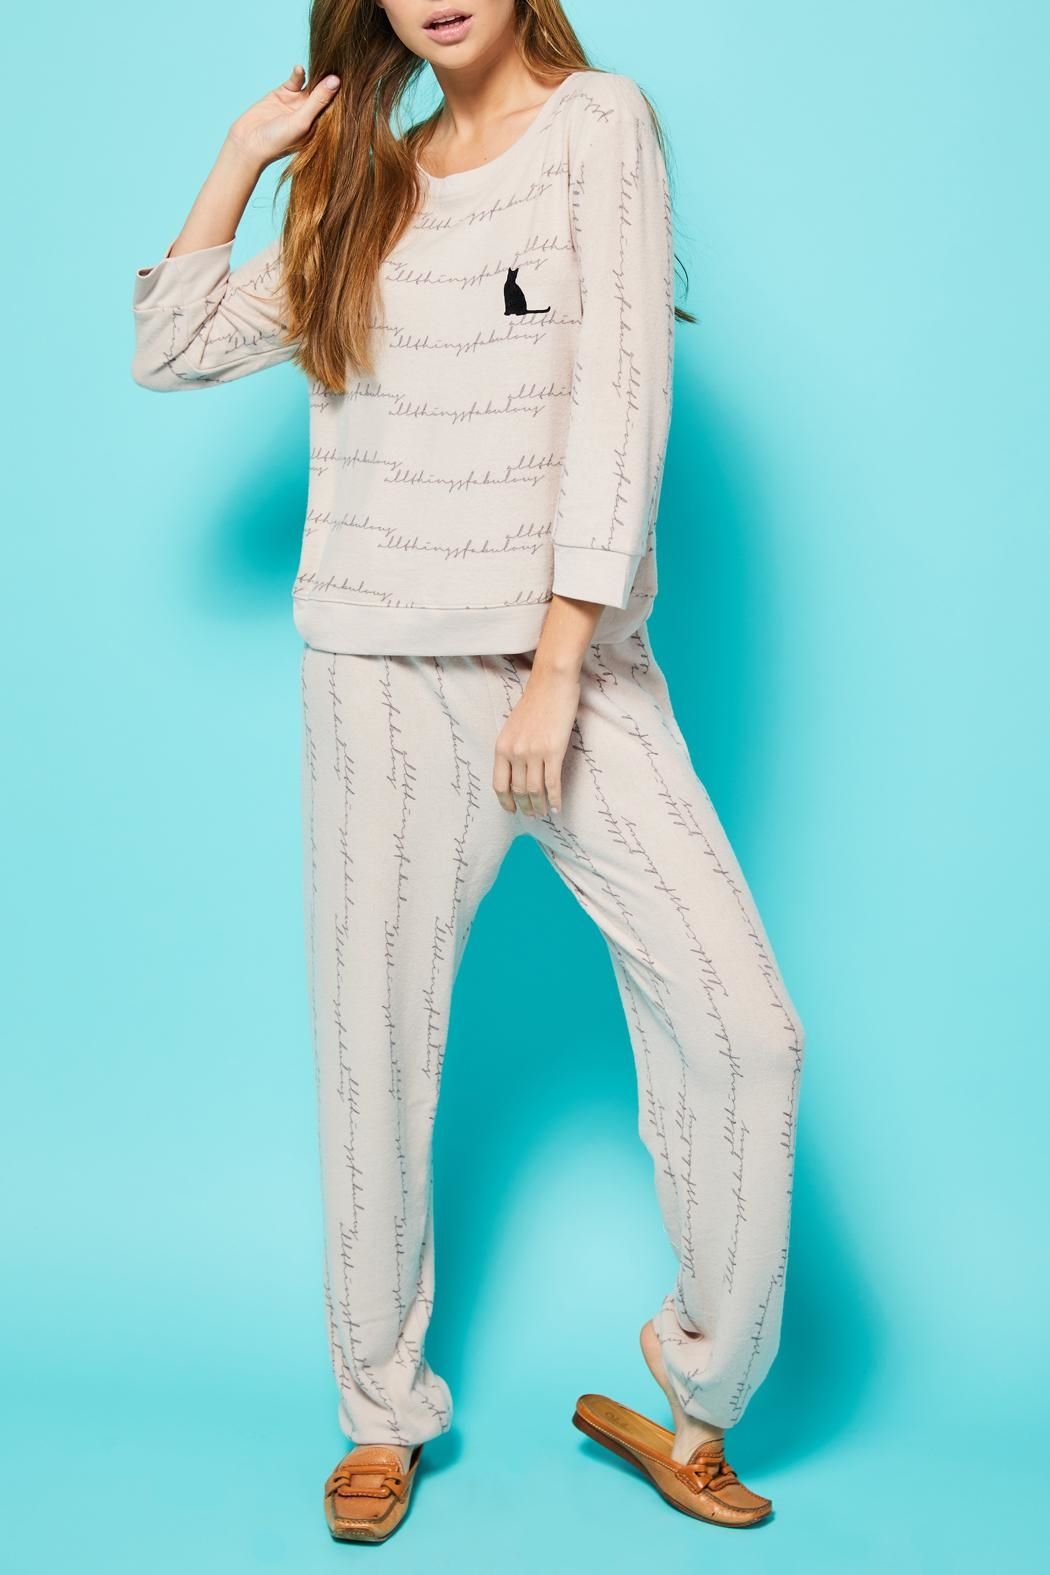 All Things Fabulous Atf Cozy Sweater - Side Cropped Image